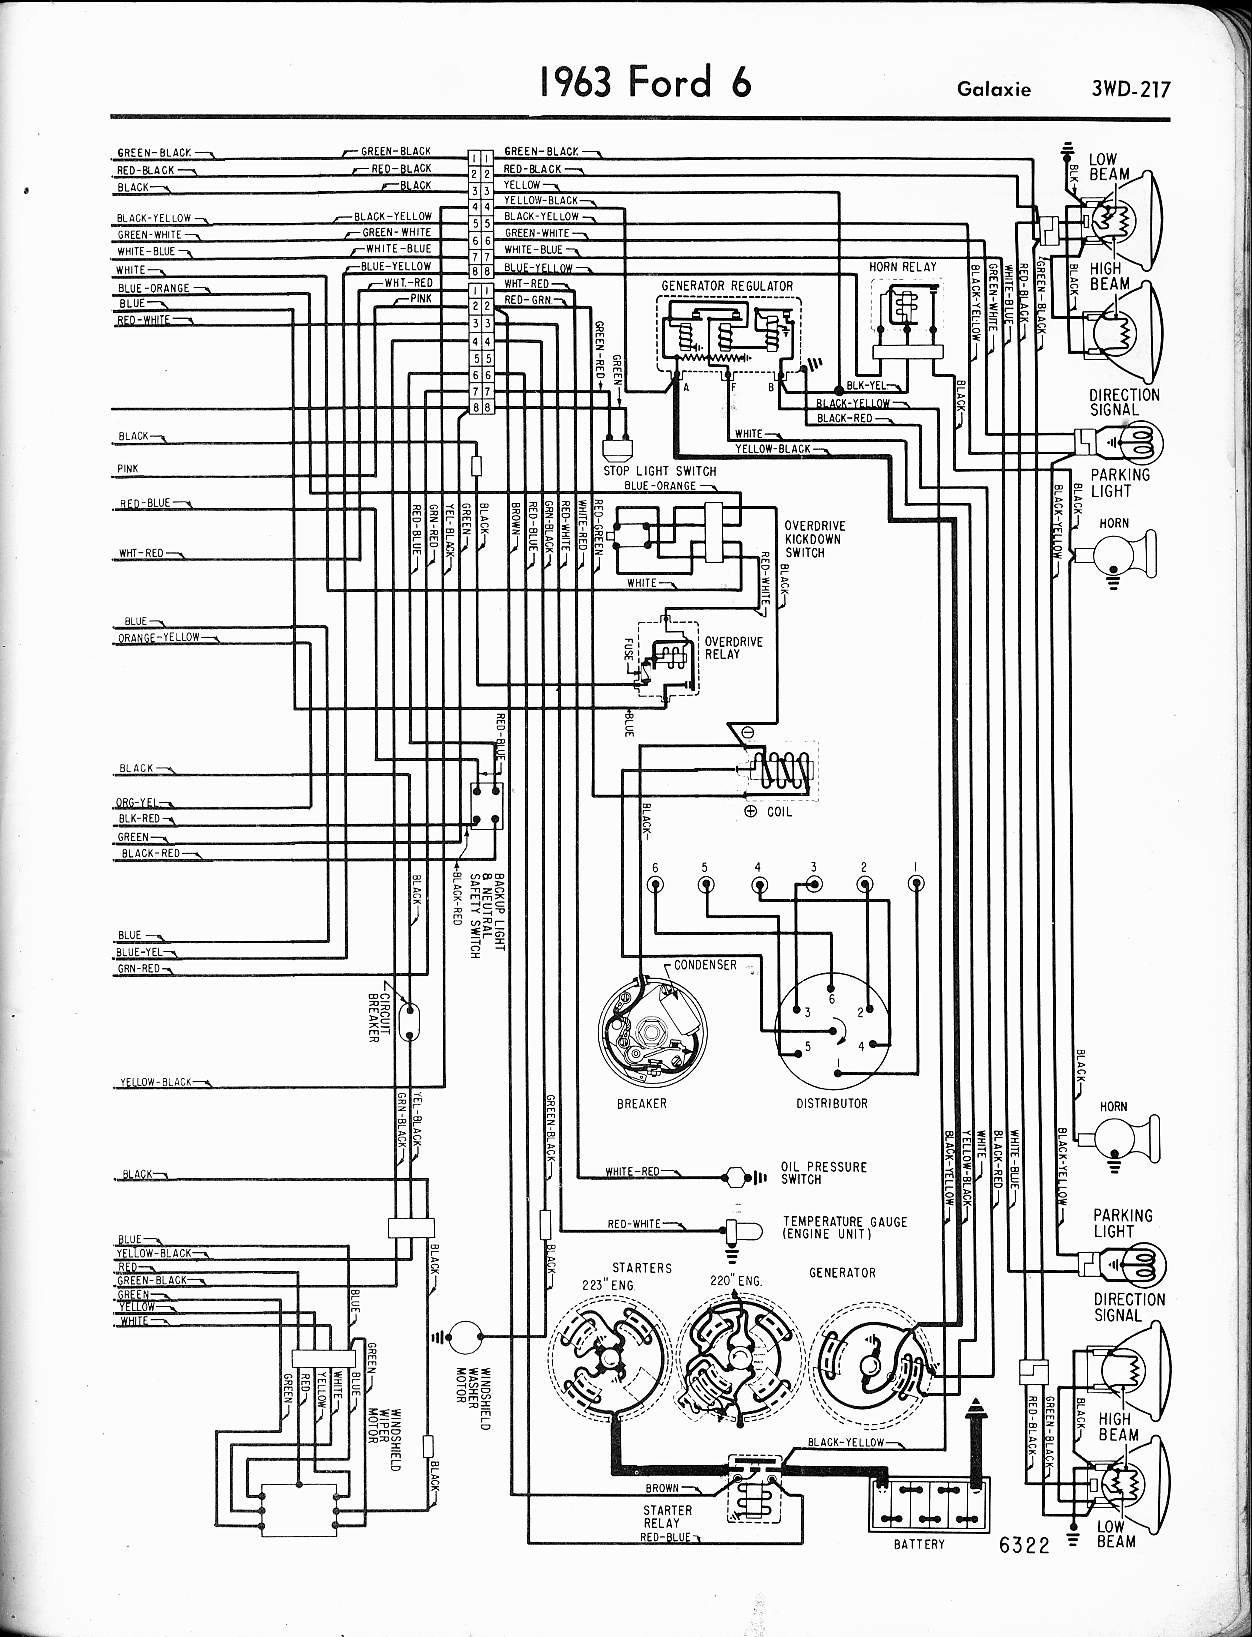 01 Subaru Forester Fuse Panel Block And Schematic Diagrams 2001 Diagram Wiring For Shibaura Sd22 Tractor Box